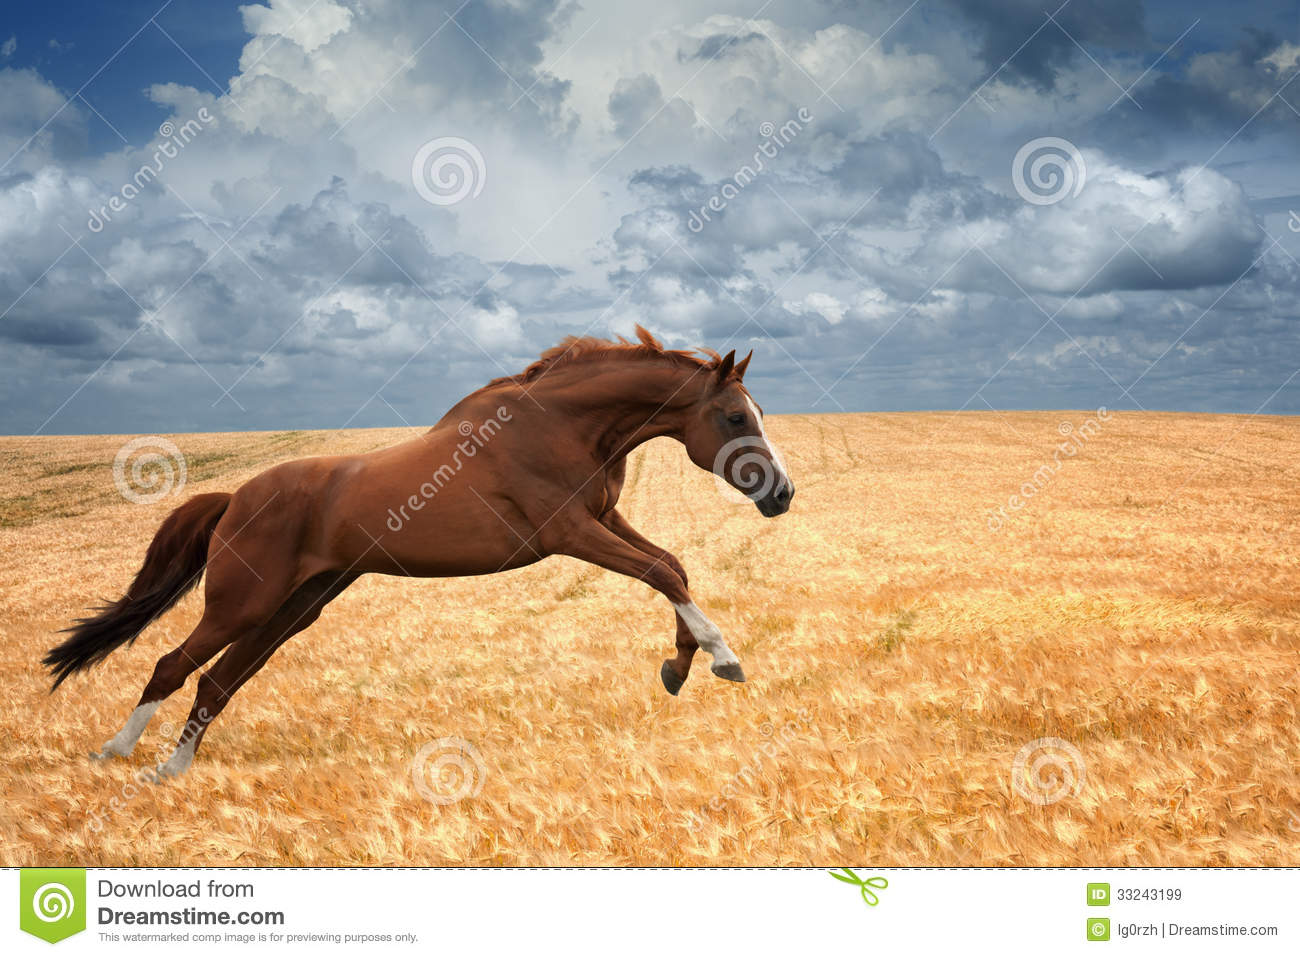 running horse royalty free stock images - image: 33243199